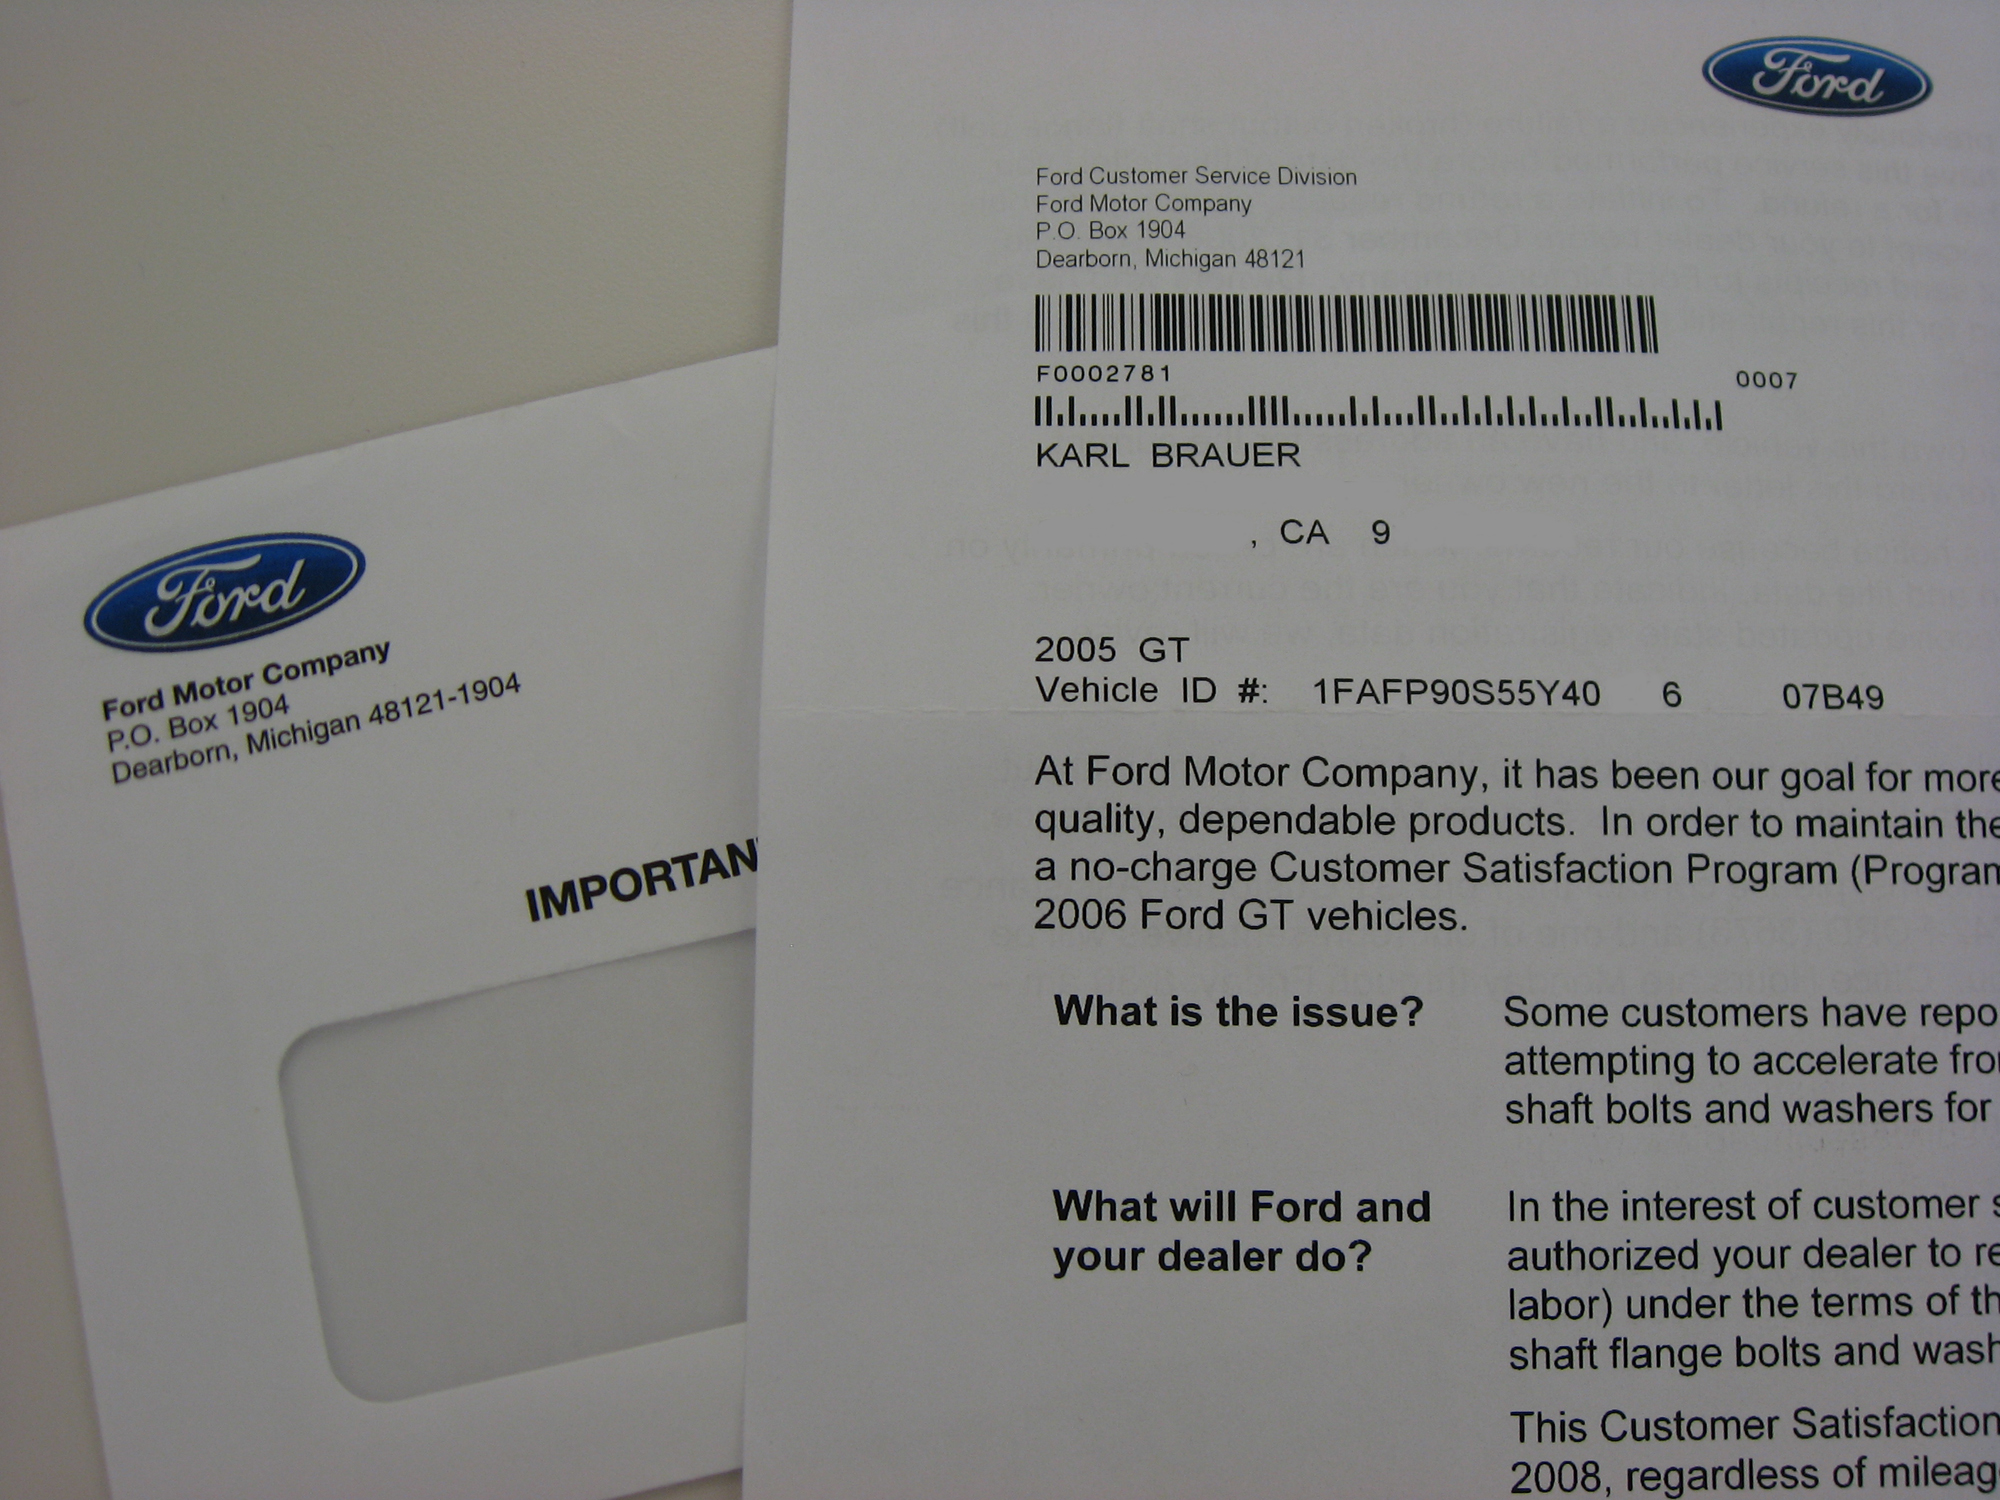 2005 Ford GT Long Term Axle Bolt Recall Notice